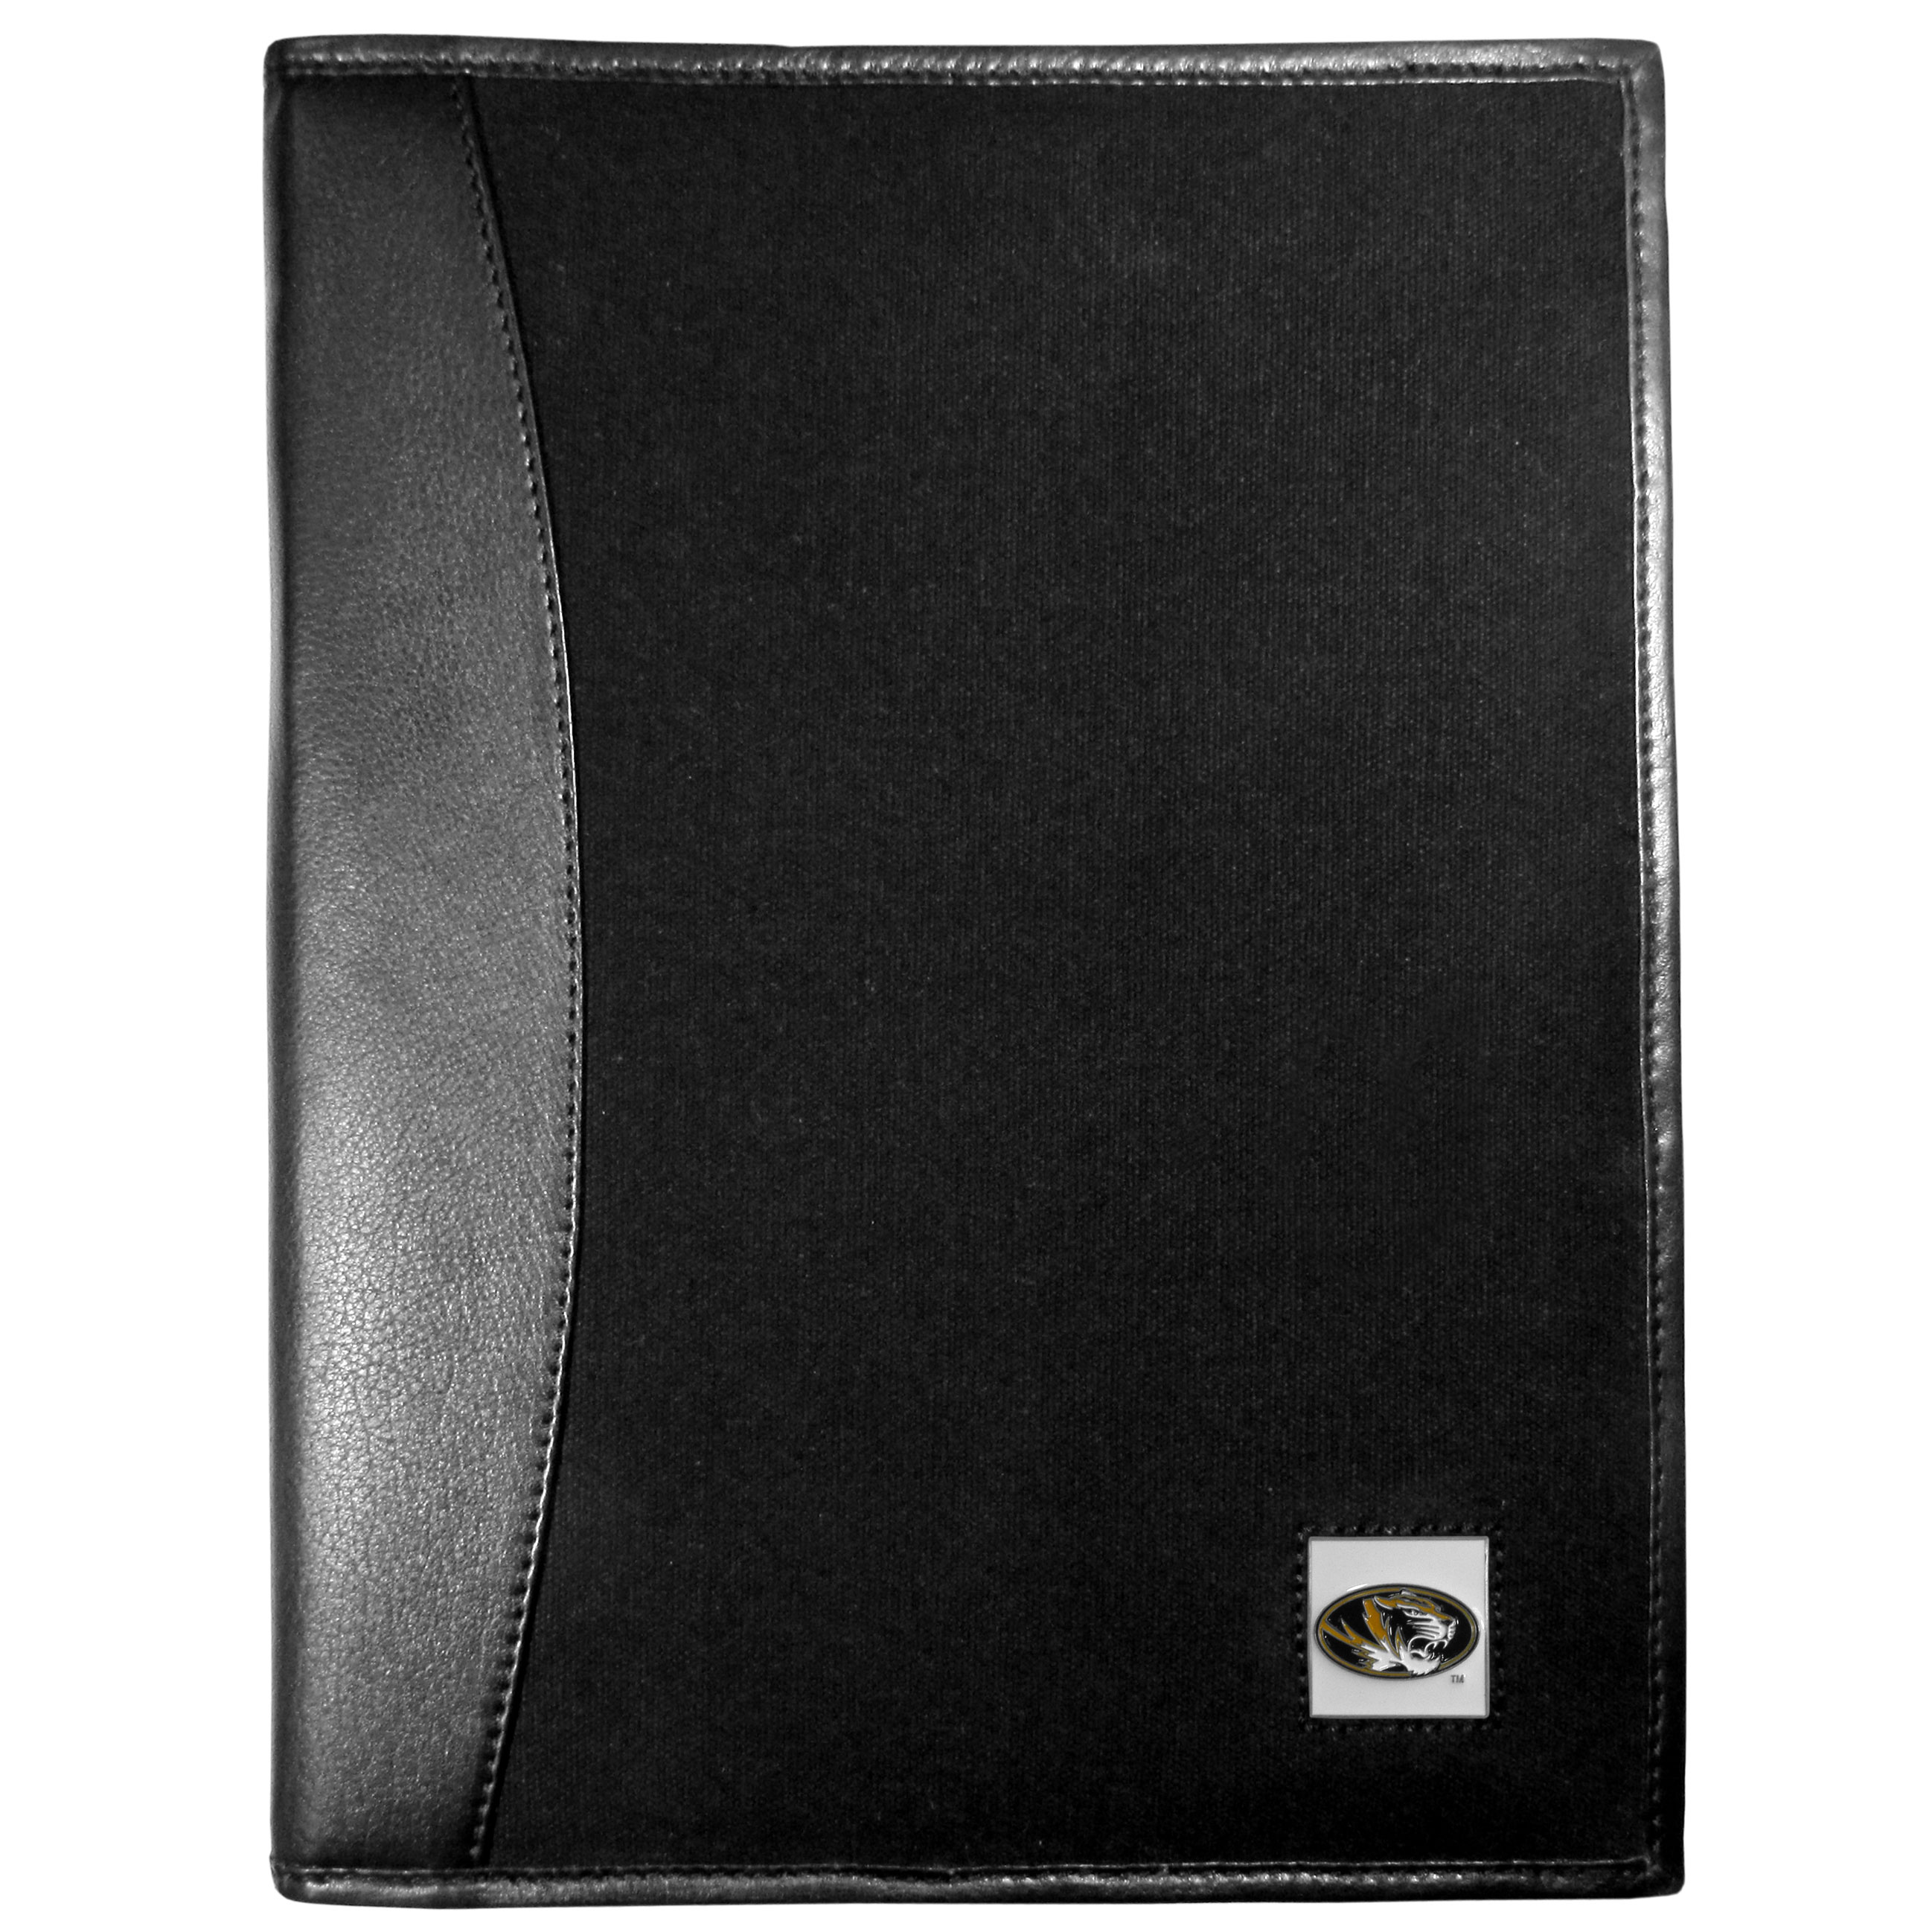 Missouri Tigers Leather and Canvas Padfolio - Our leather and canvas padfolio perfectly blends form and function. The attractive portfolio is bound in fine grain leather with an attractive canvas finish and the interior is a soft nylon. This high quality business accessory also features a fully cast metal Missouri Tigers emblem that is subtly set in the corner of the organizer. It is packed with features like 6 card slots for badges, business cards, hotel keys or credit cards and ID with a large pocket for loose papers and a writing tablet slot making it a must-have for the professional on the go.